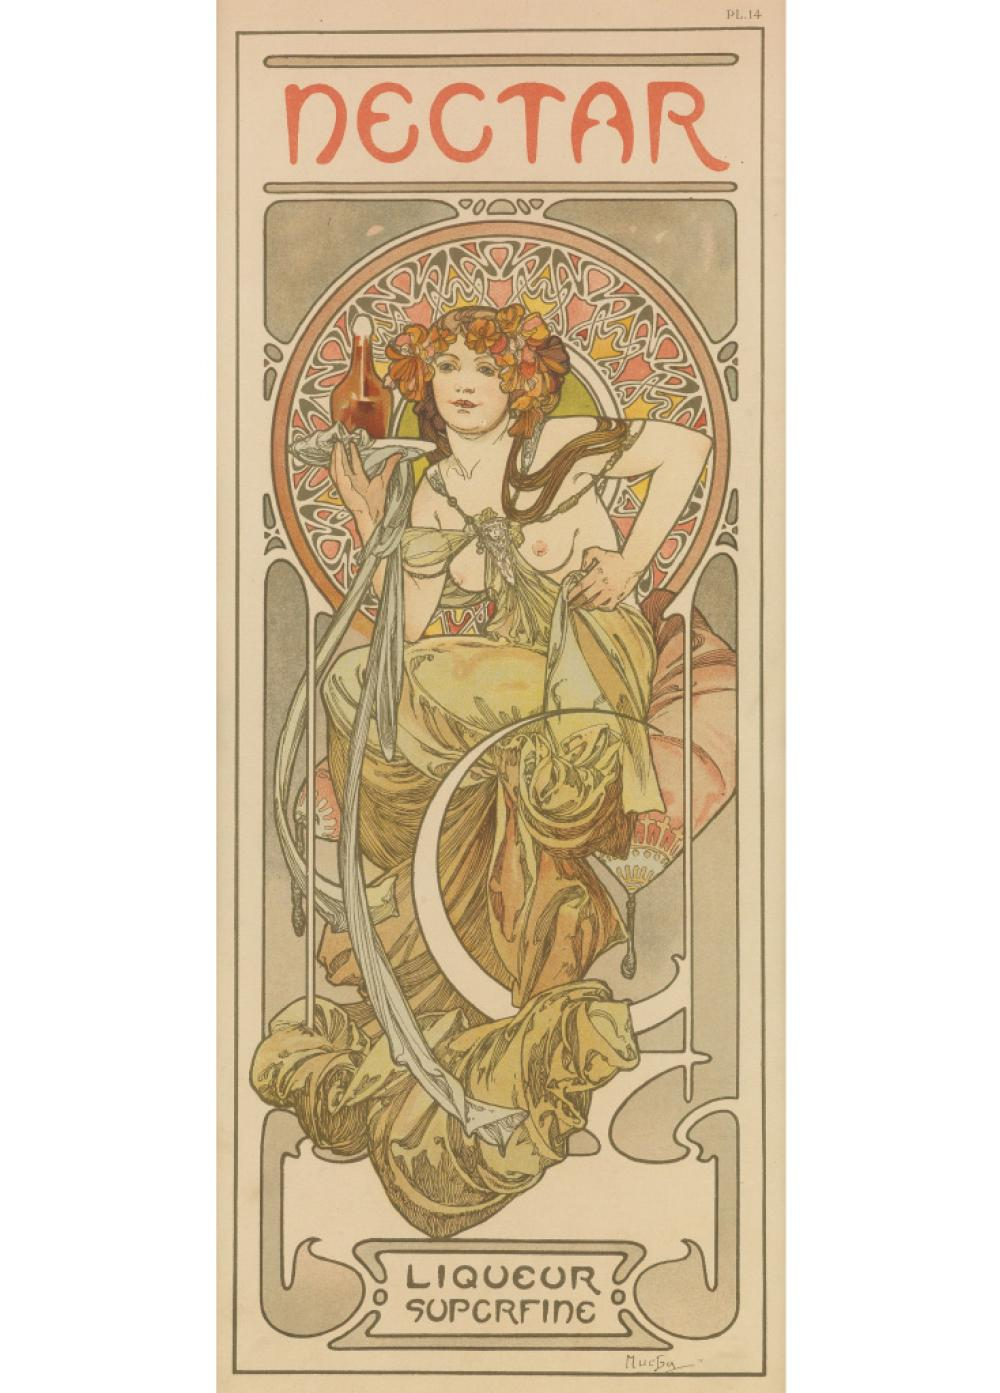 ALPHONSE MUCHA (1860-1939). NECTAR. Documents Décoratifs, pl. 14. 1902. 16x10 inches, 42x27 cm. [Emile Levy, Paris.]